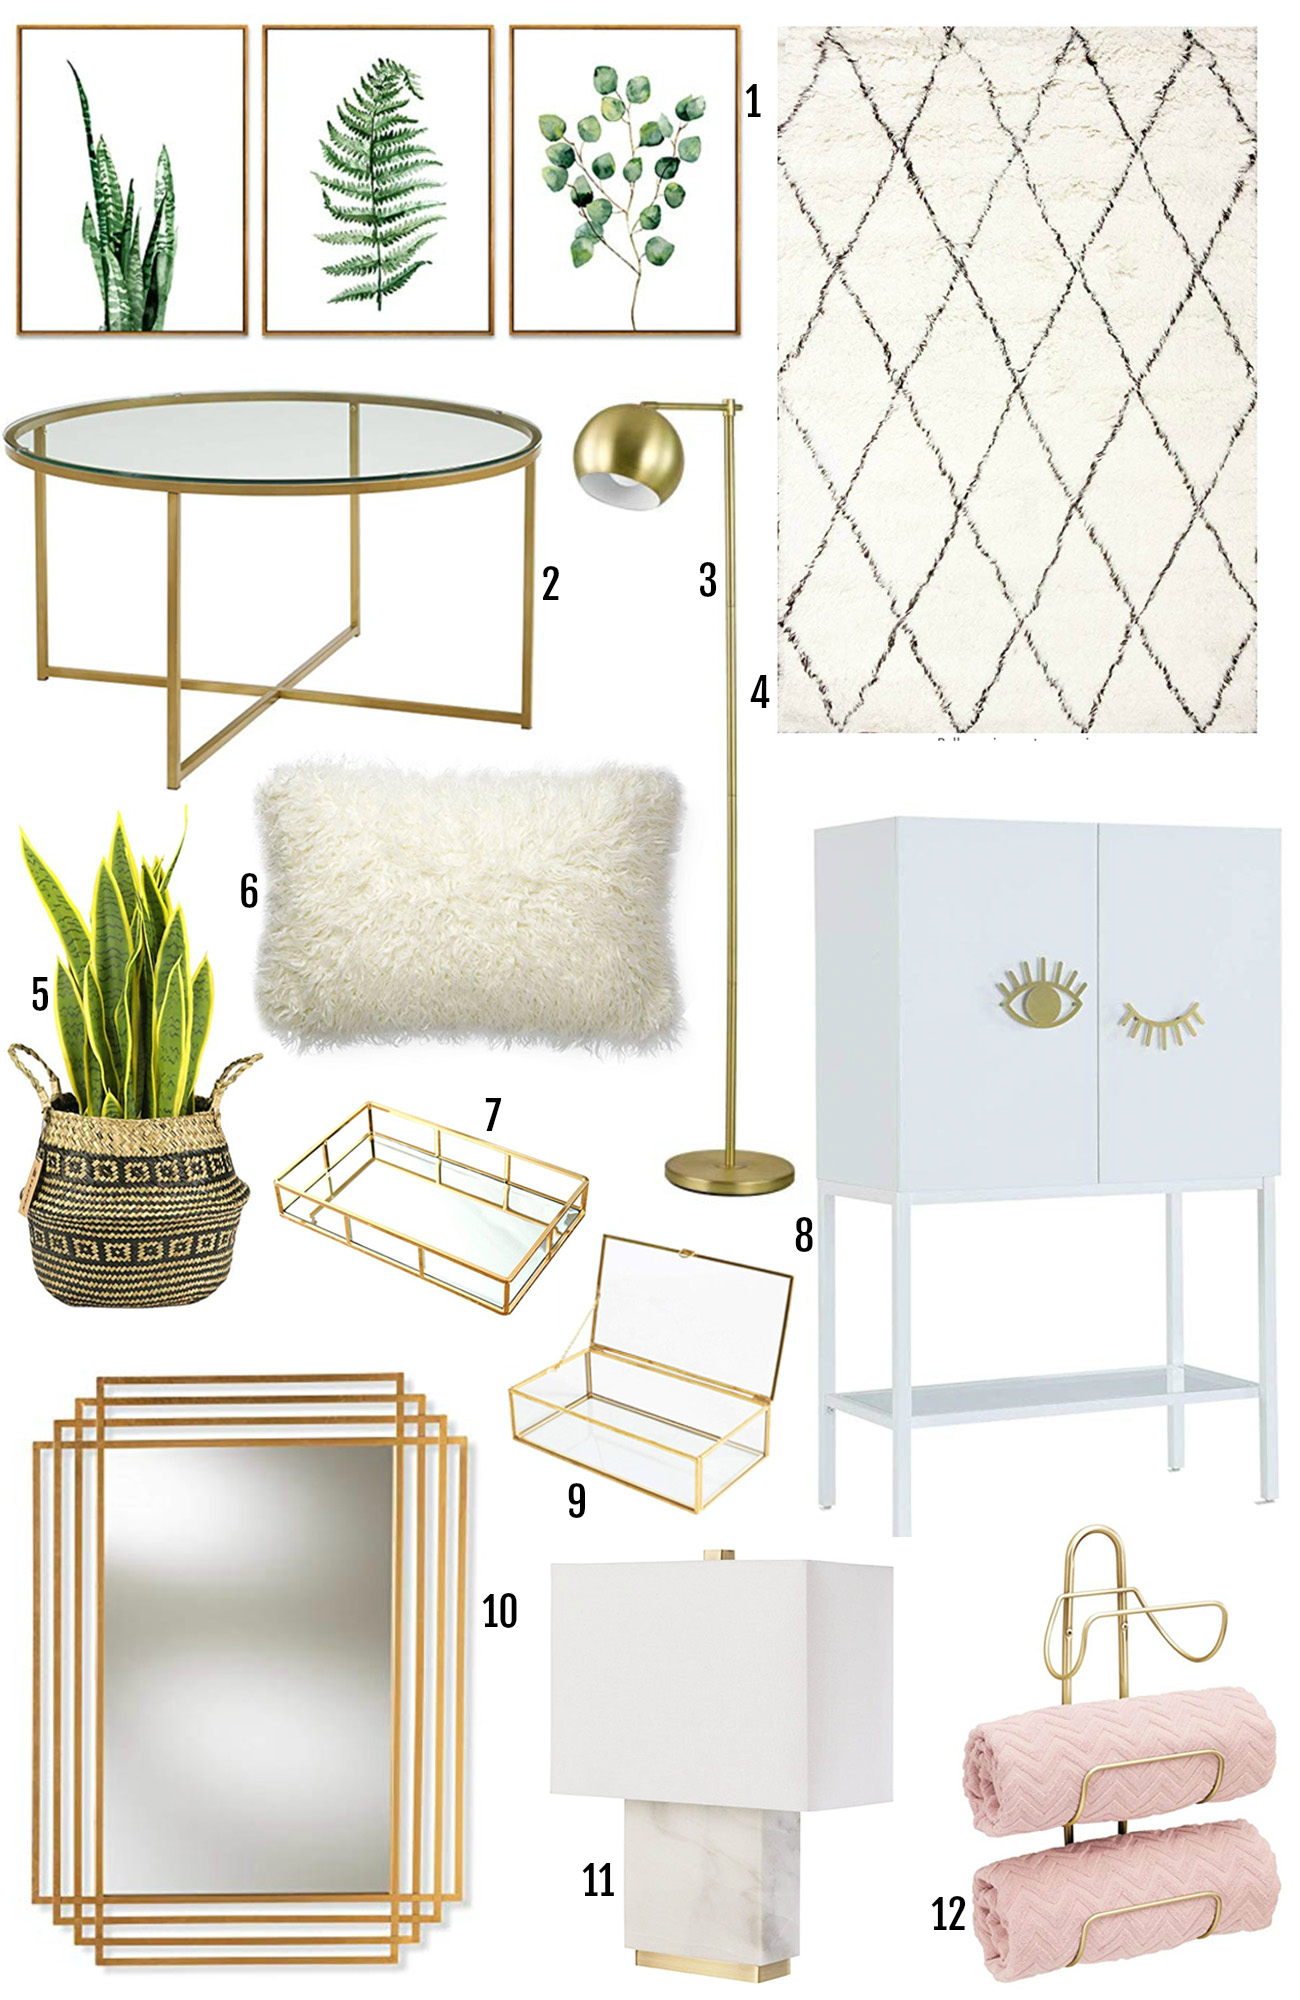 Amazon Prime affordable home decor finds | gold home decor | Amazon Prime | plants | gold table | gold mirror